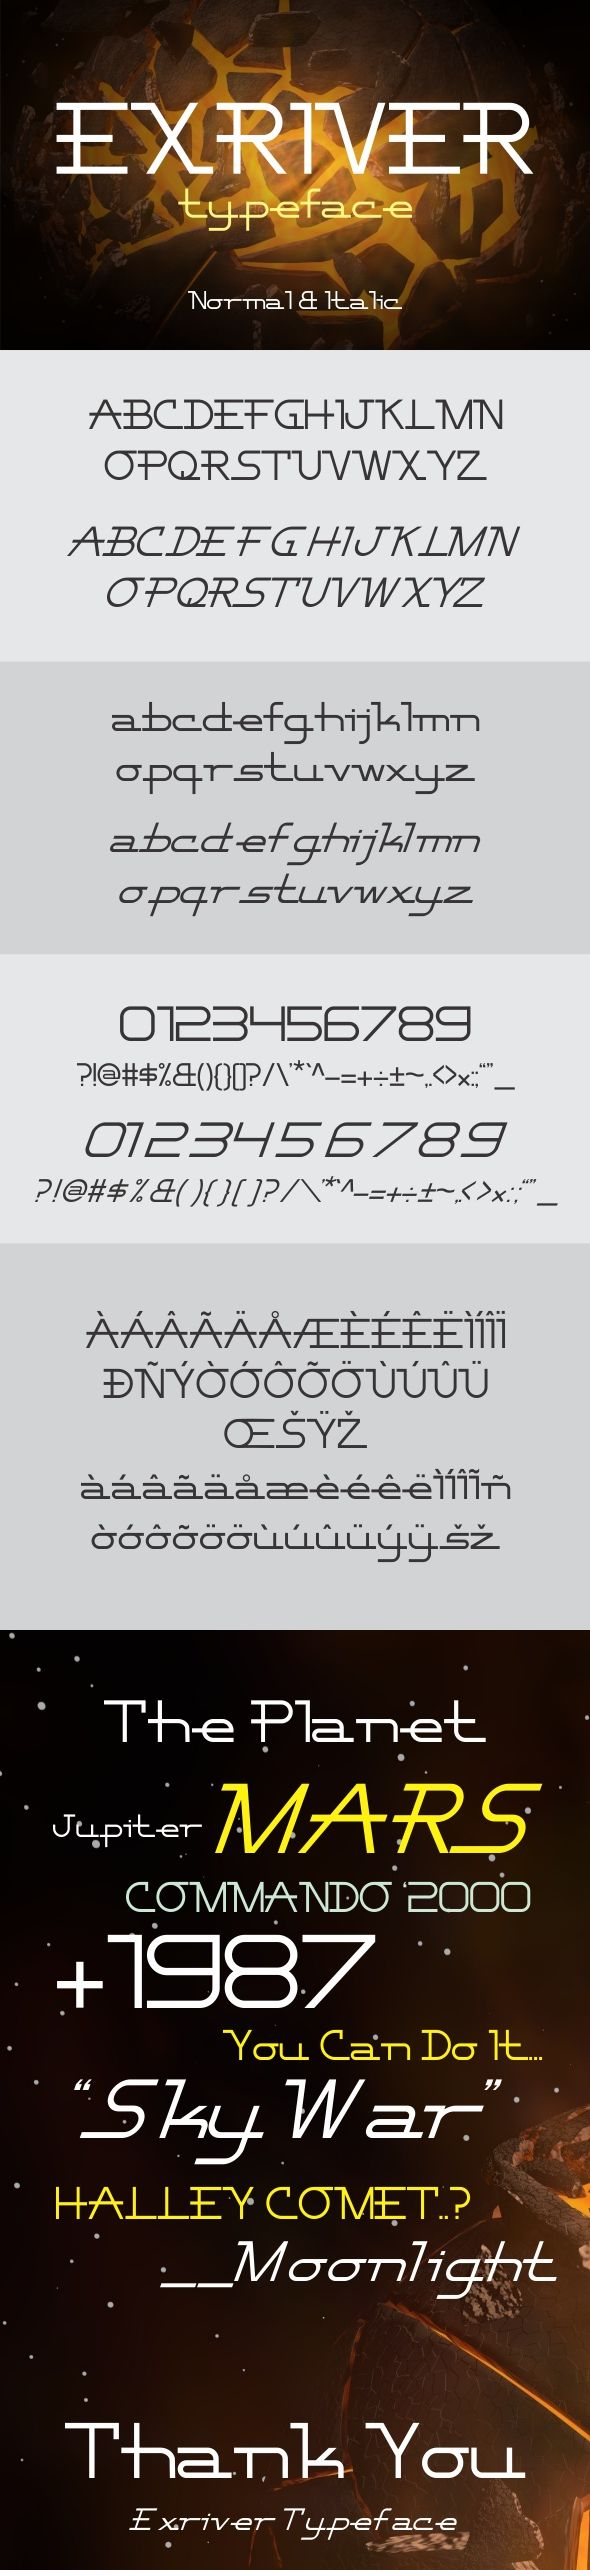 Exriver #Typeface - Futuristic #Decorative Download here: https://graphicriver.net/item/exriver-typeface/19504974?ref=alena994